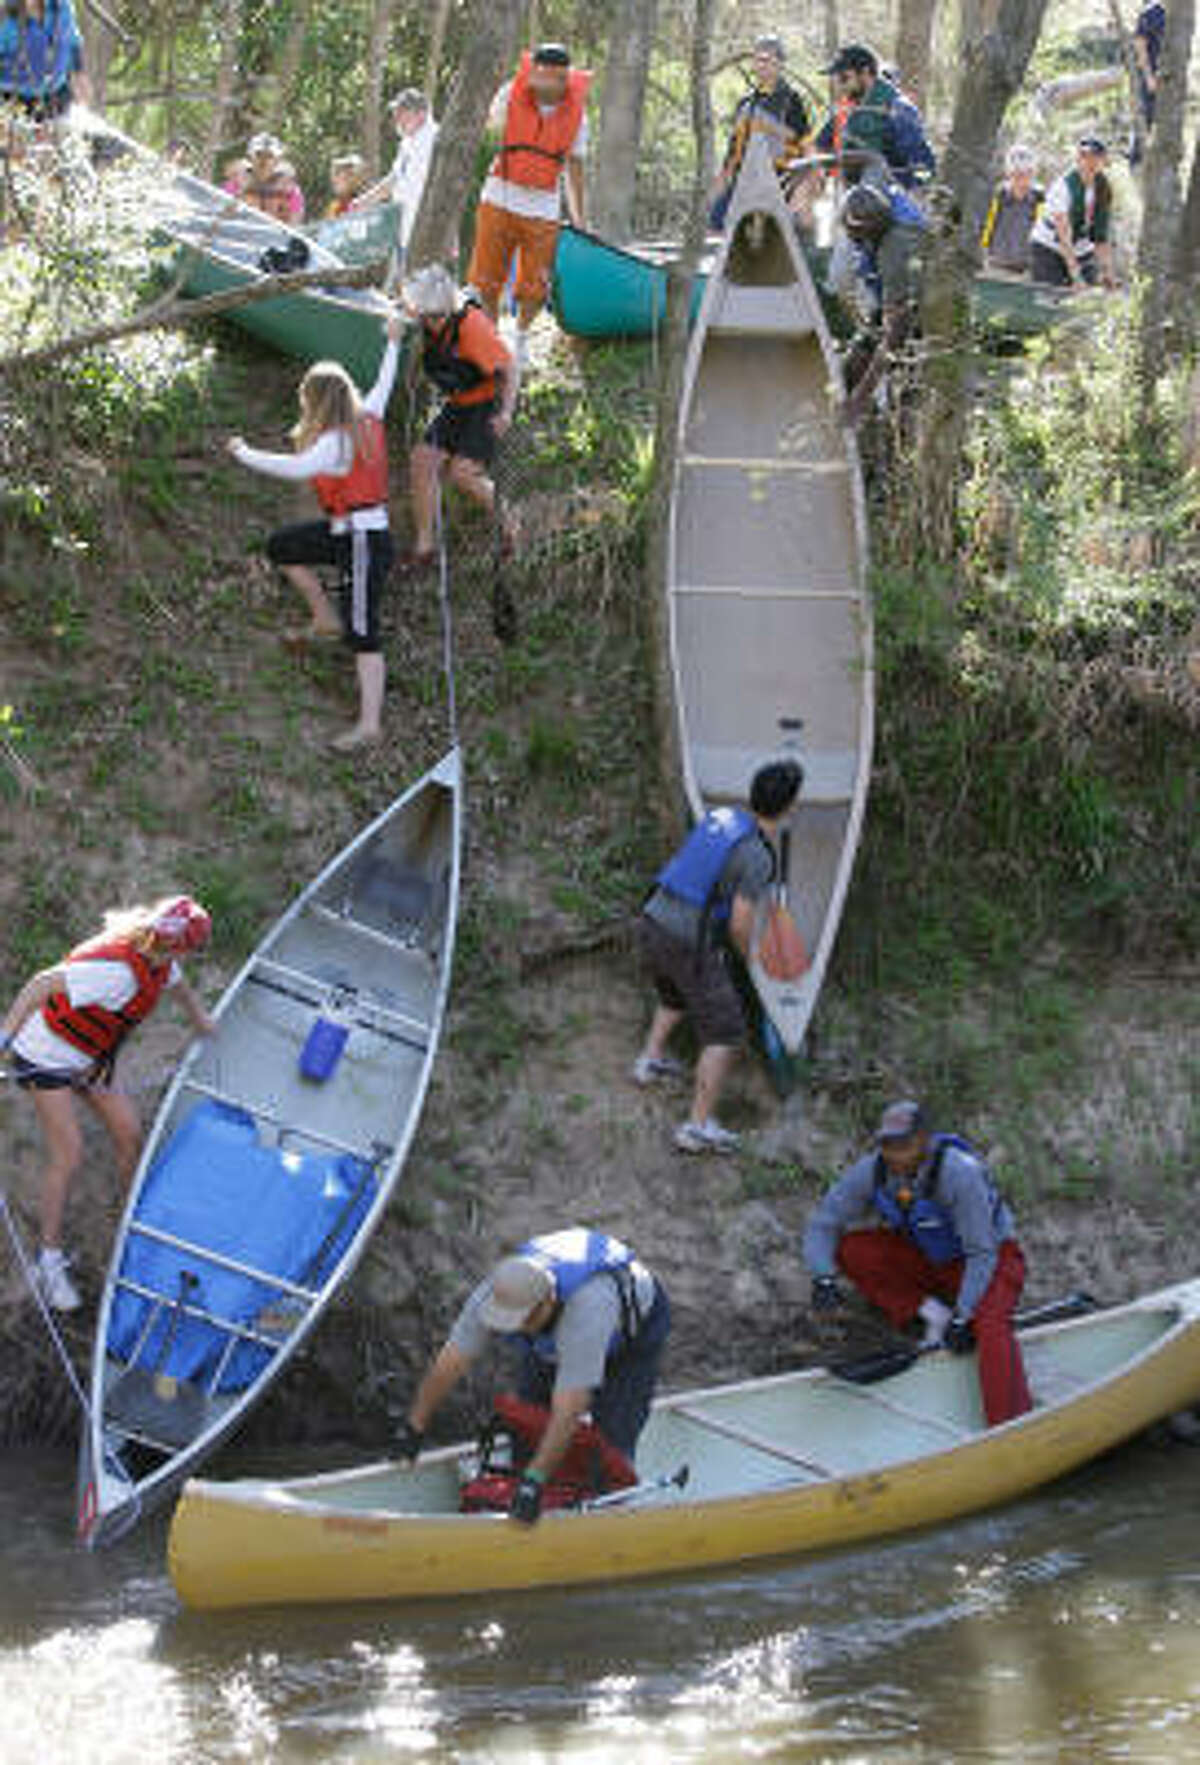 People work to get their canoes into water at the 38th Annual Buffalo Bayou Regatta.